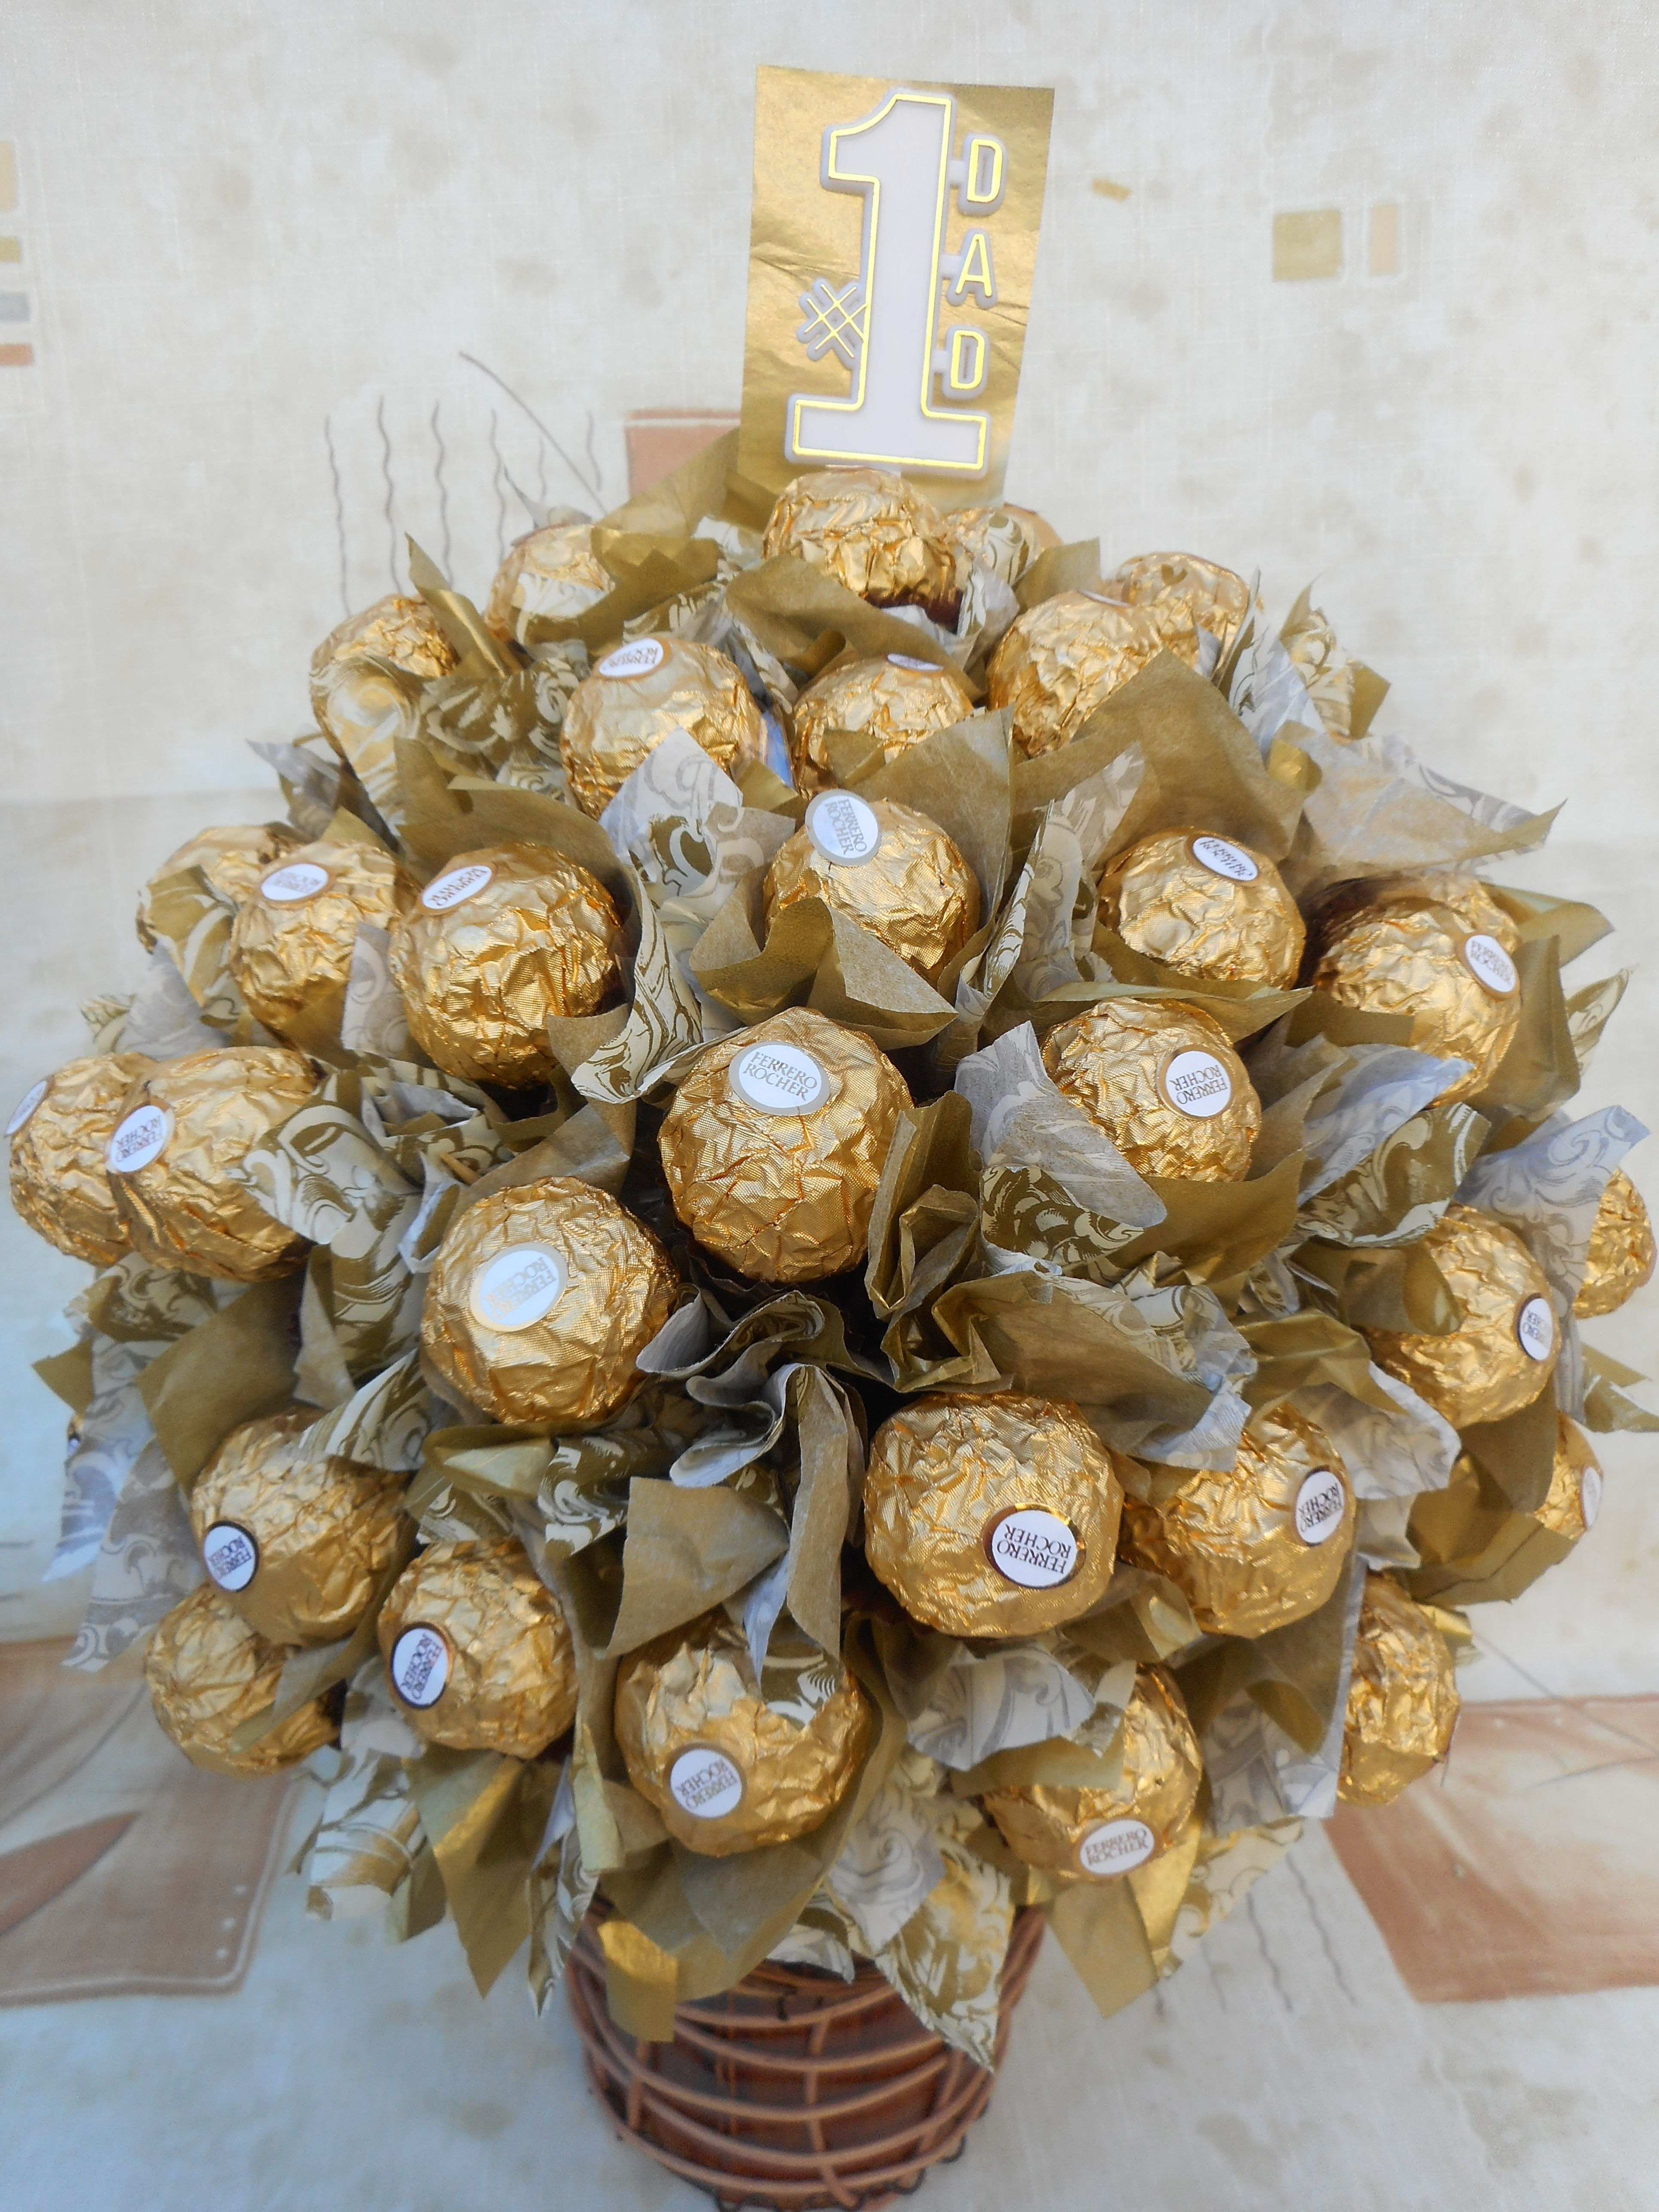 Chocolate bouquet on pinterest candy flowers bouquet of chocolate - Chocolate Bouquet